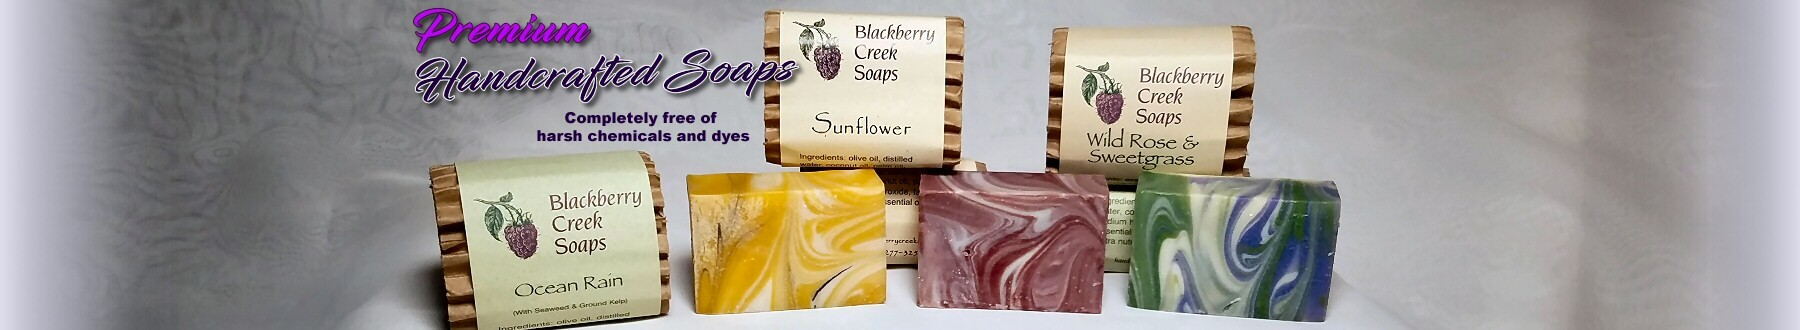 Premium Handcrafted Soaps - Completely free of harsh chemicals and dyes